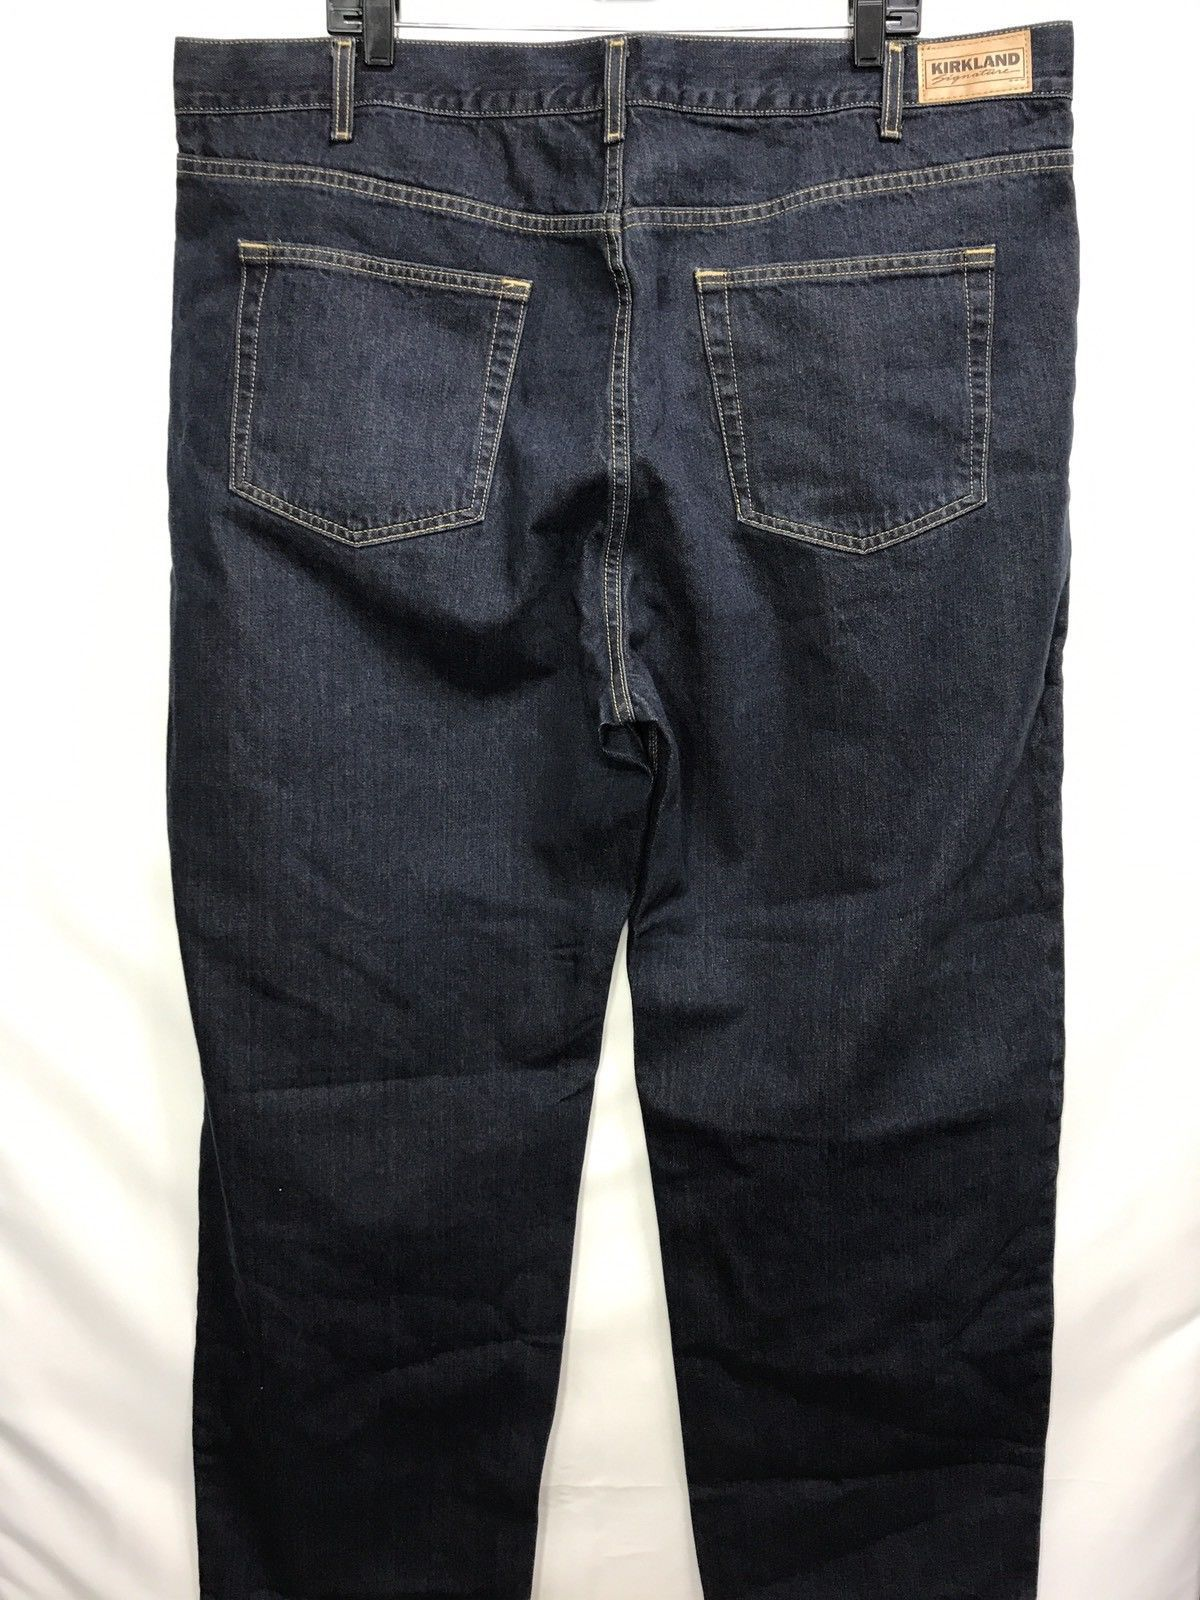 NWOT Men's Kirkland Signature Dark Wash Relaxed Fit Jeans, Size 42x30